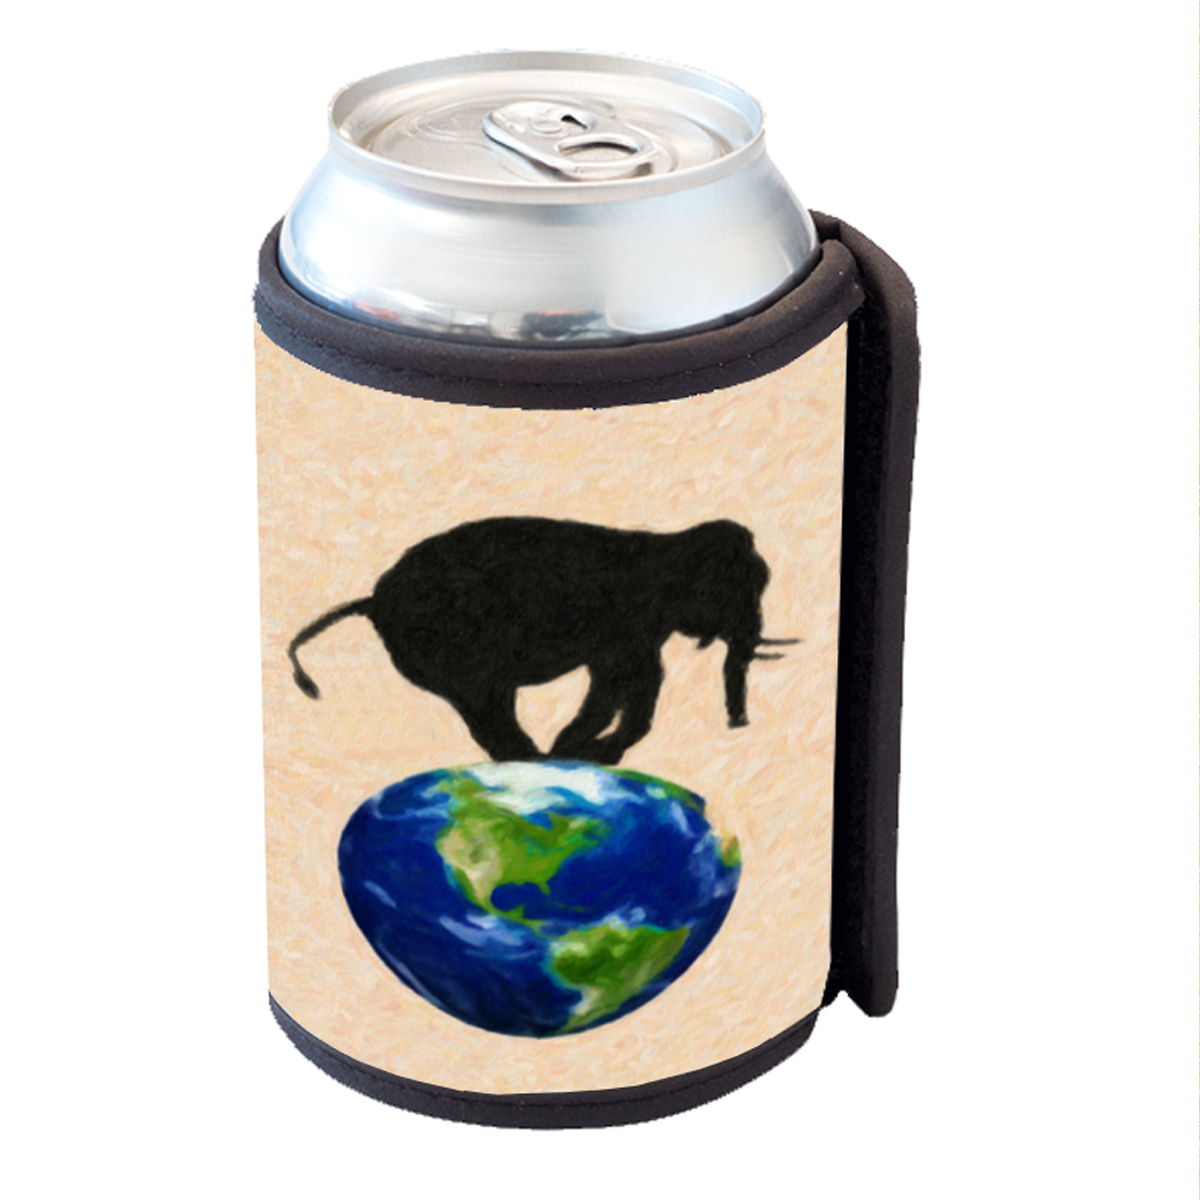 KuzmarK Insulated Drink Can Cooler Hugger - Elephant Wildlife Earth Painting